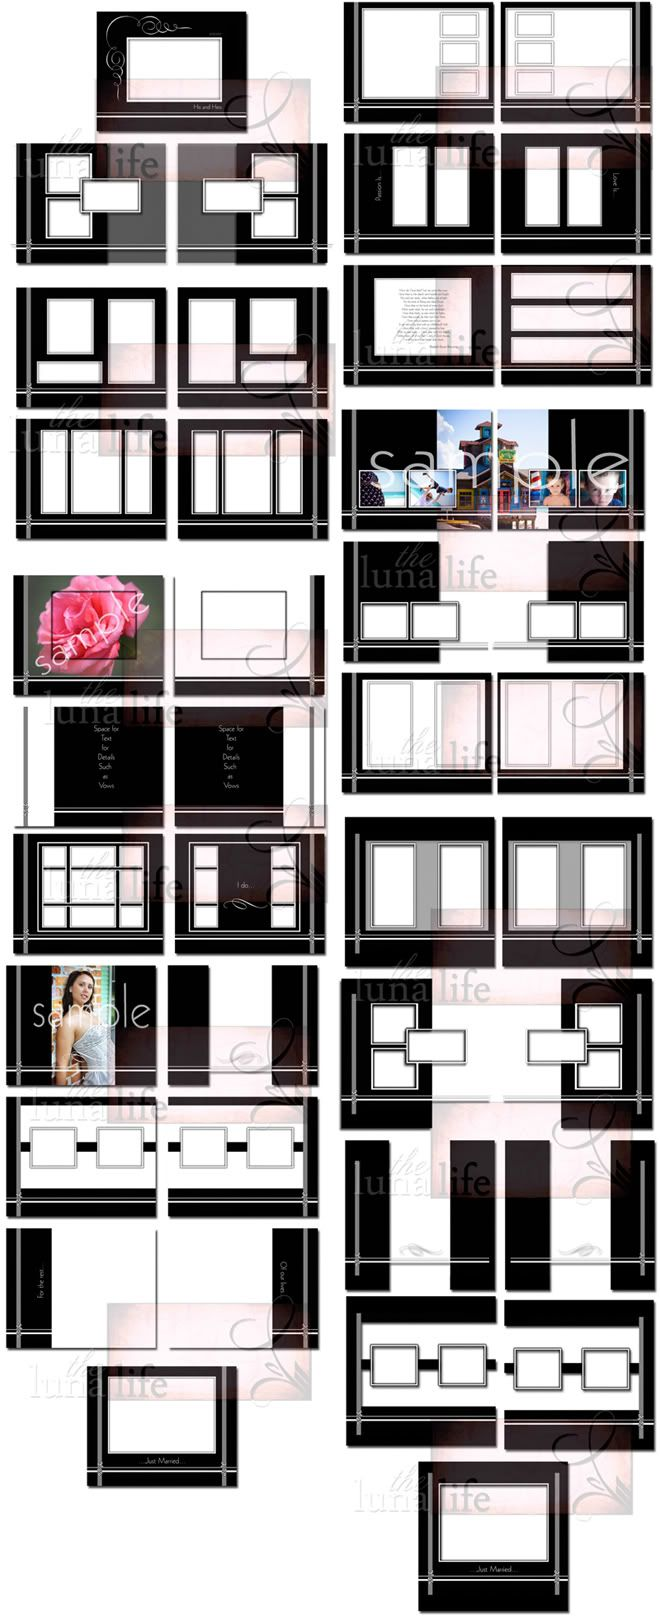 Wedding Album Design Ideas wedding album design Wedding Album Page Layout Google Search